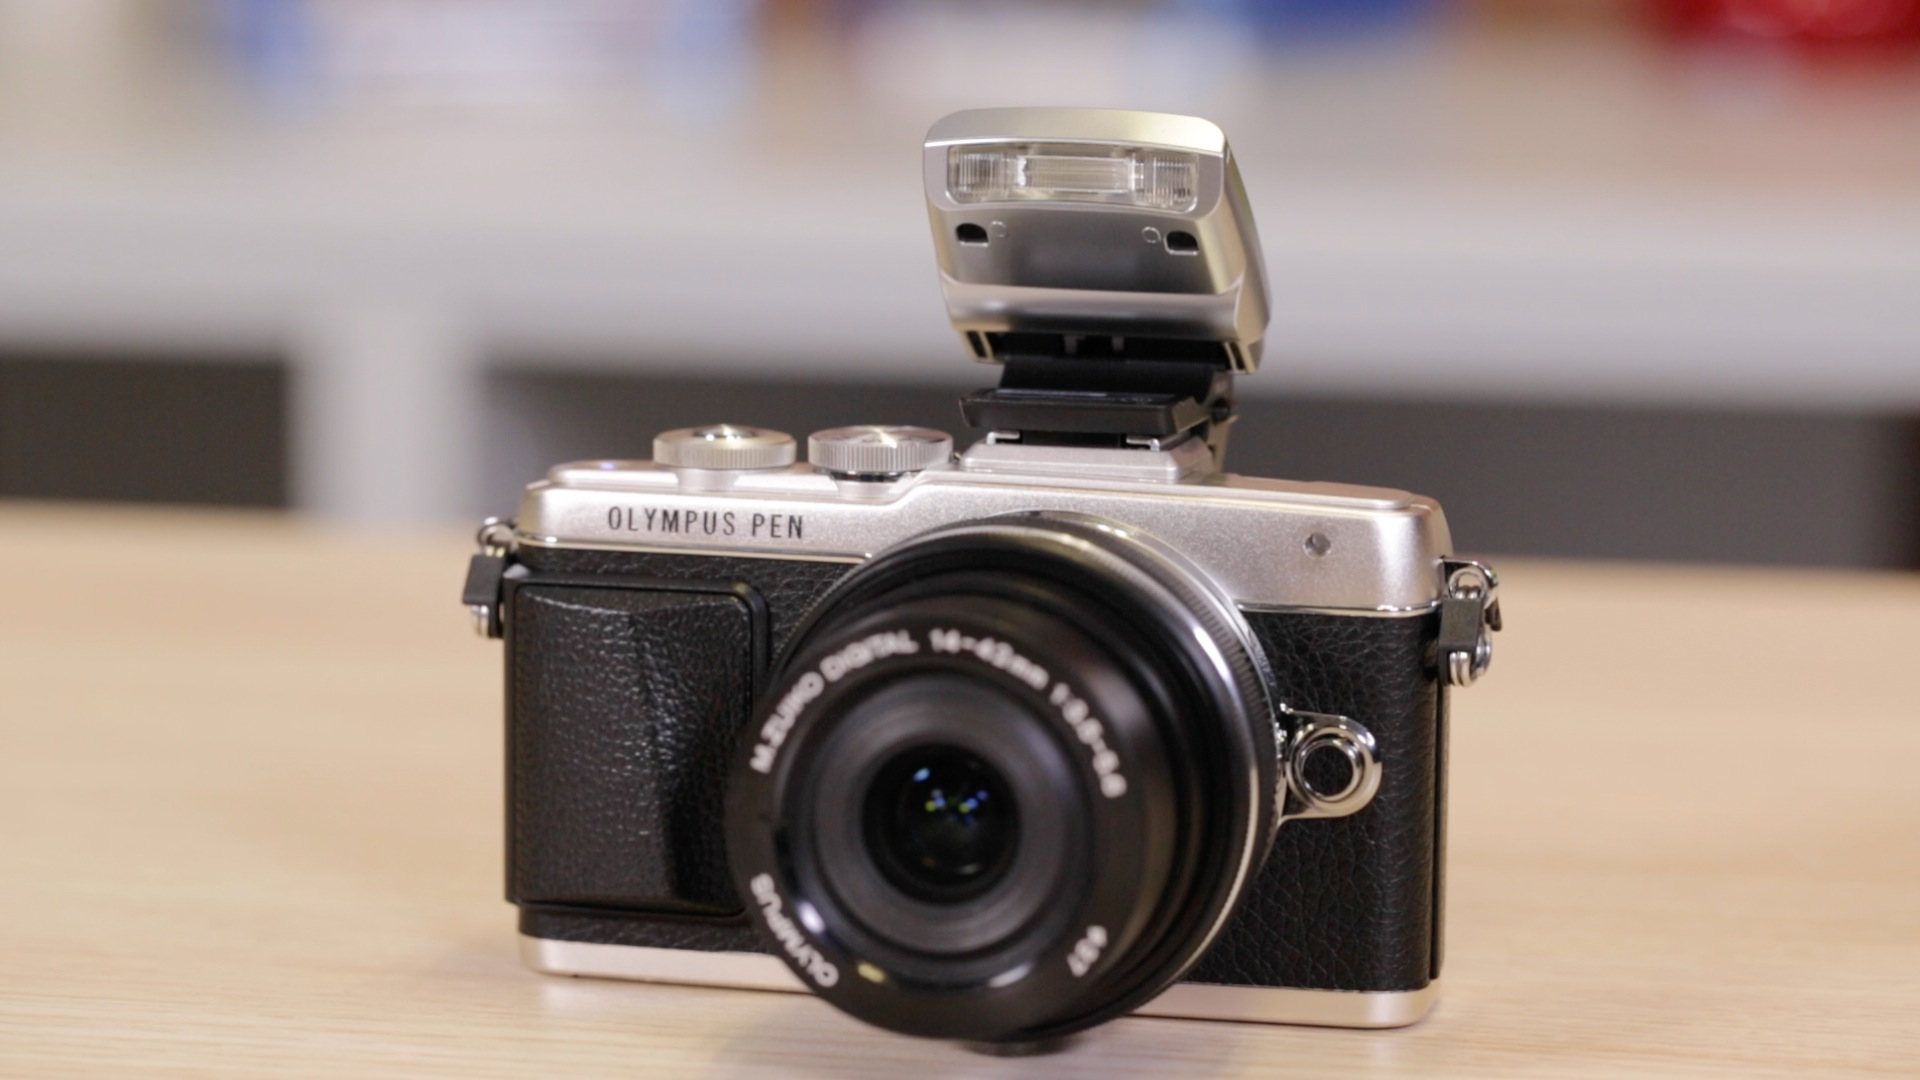 Video: Olympus Pen E-PL7 is ready for a selfie